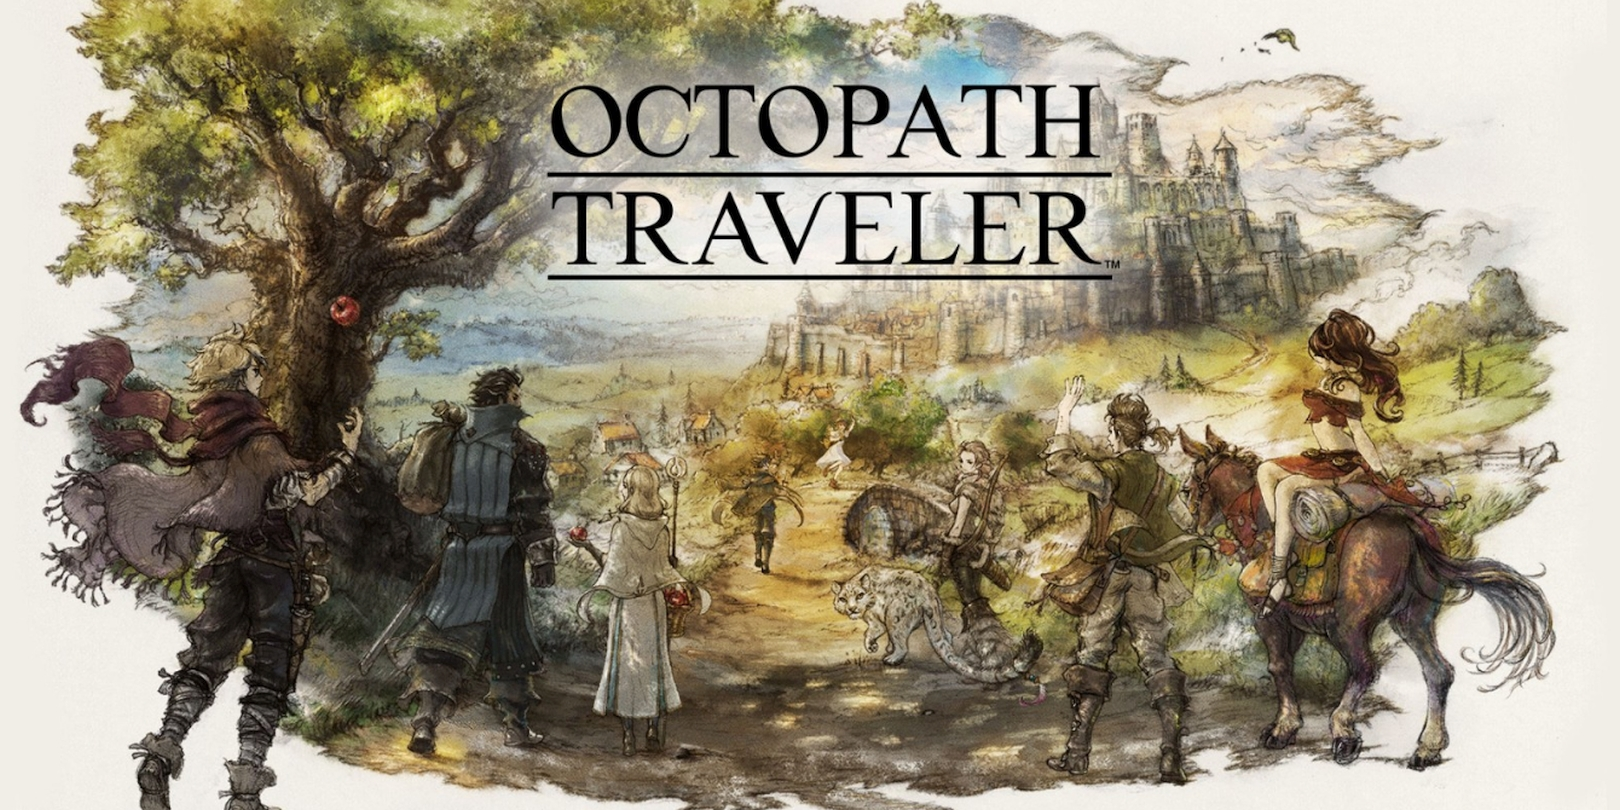 Nintendo Of Europe Announces Octopath Traveler Has Sold Two Million Copies